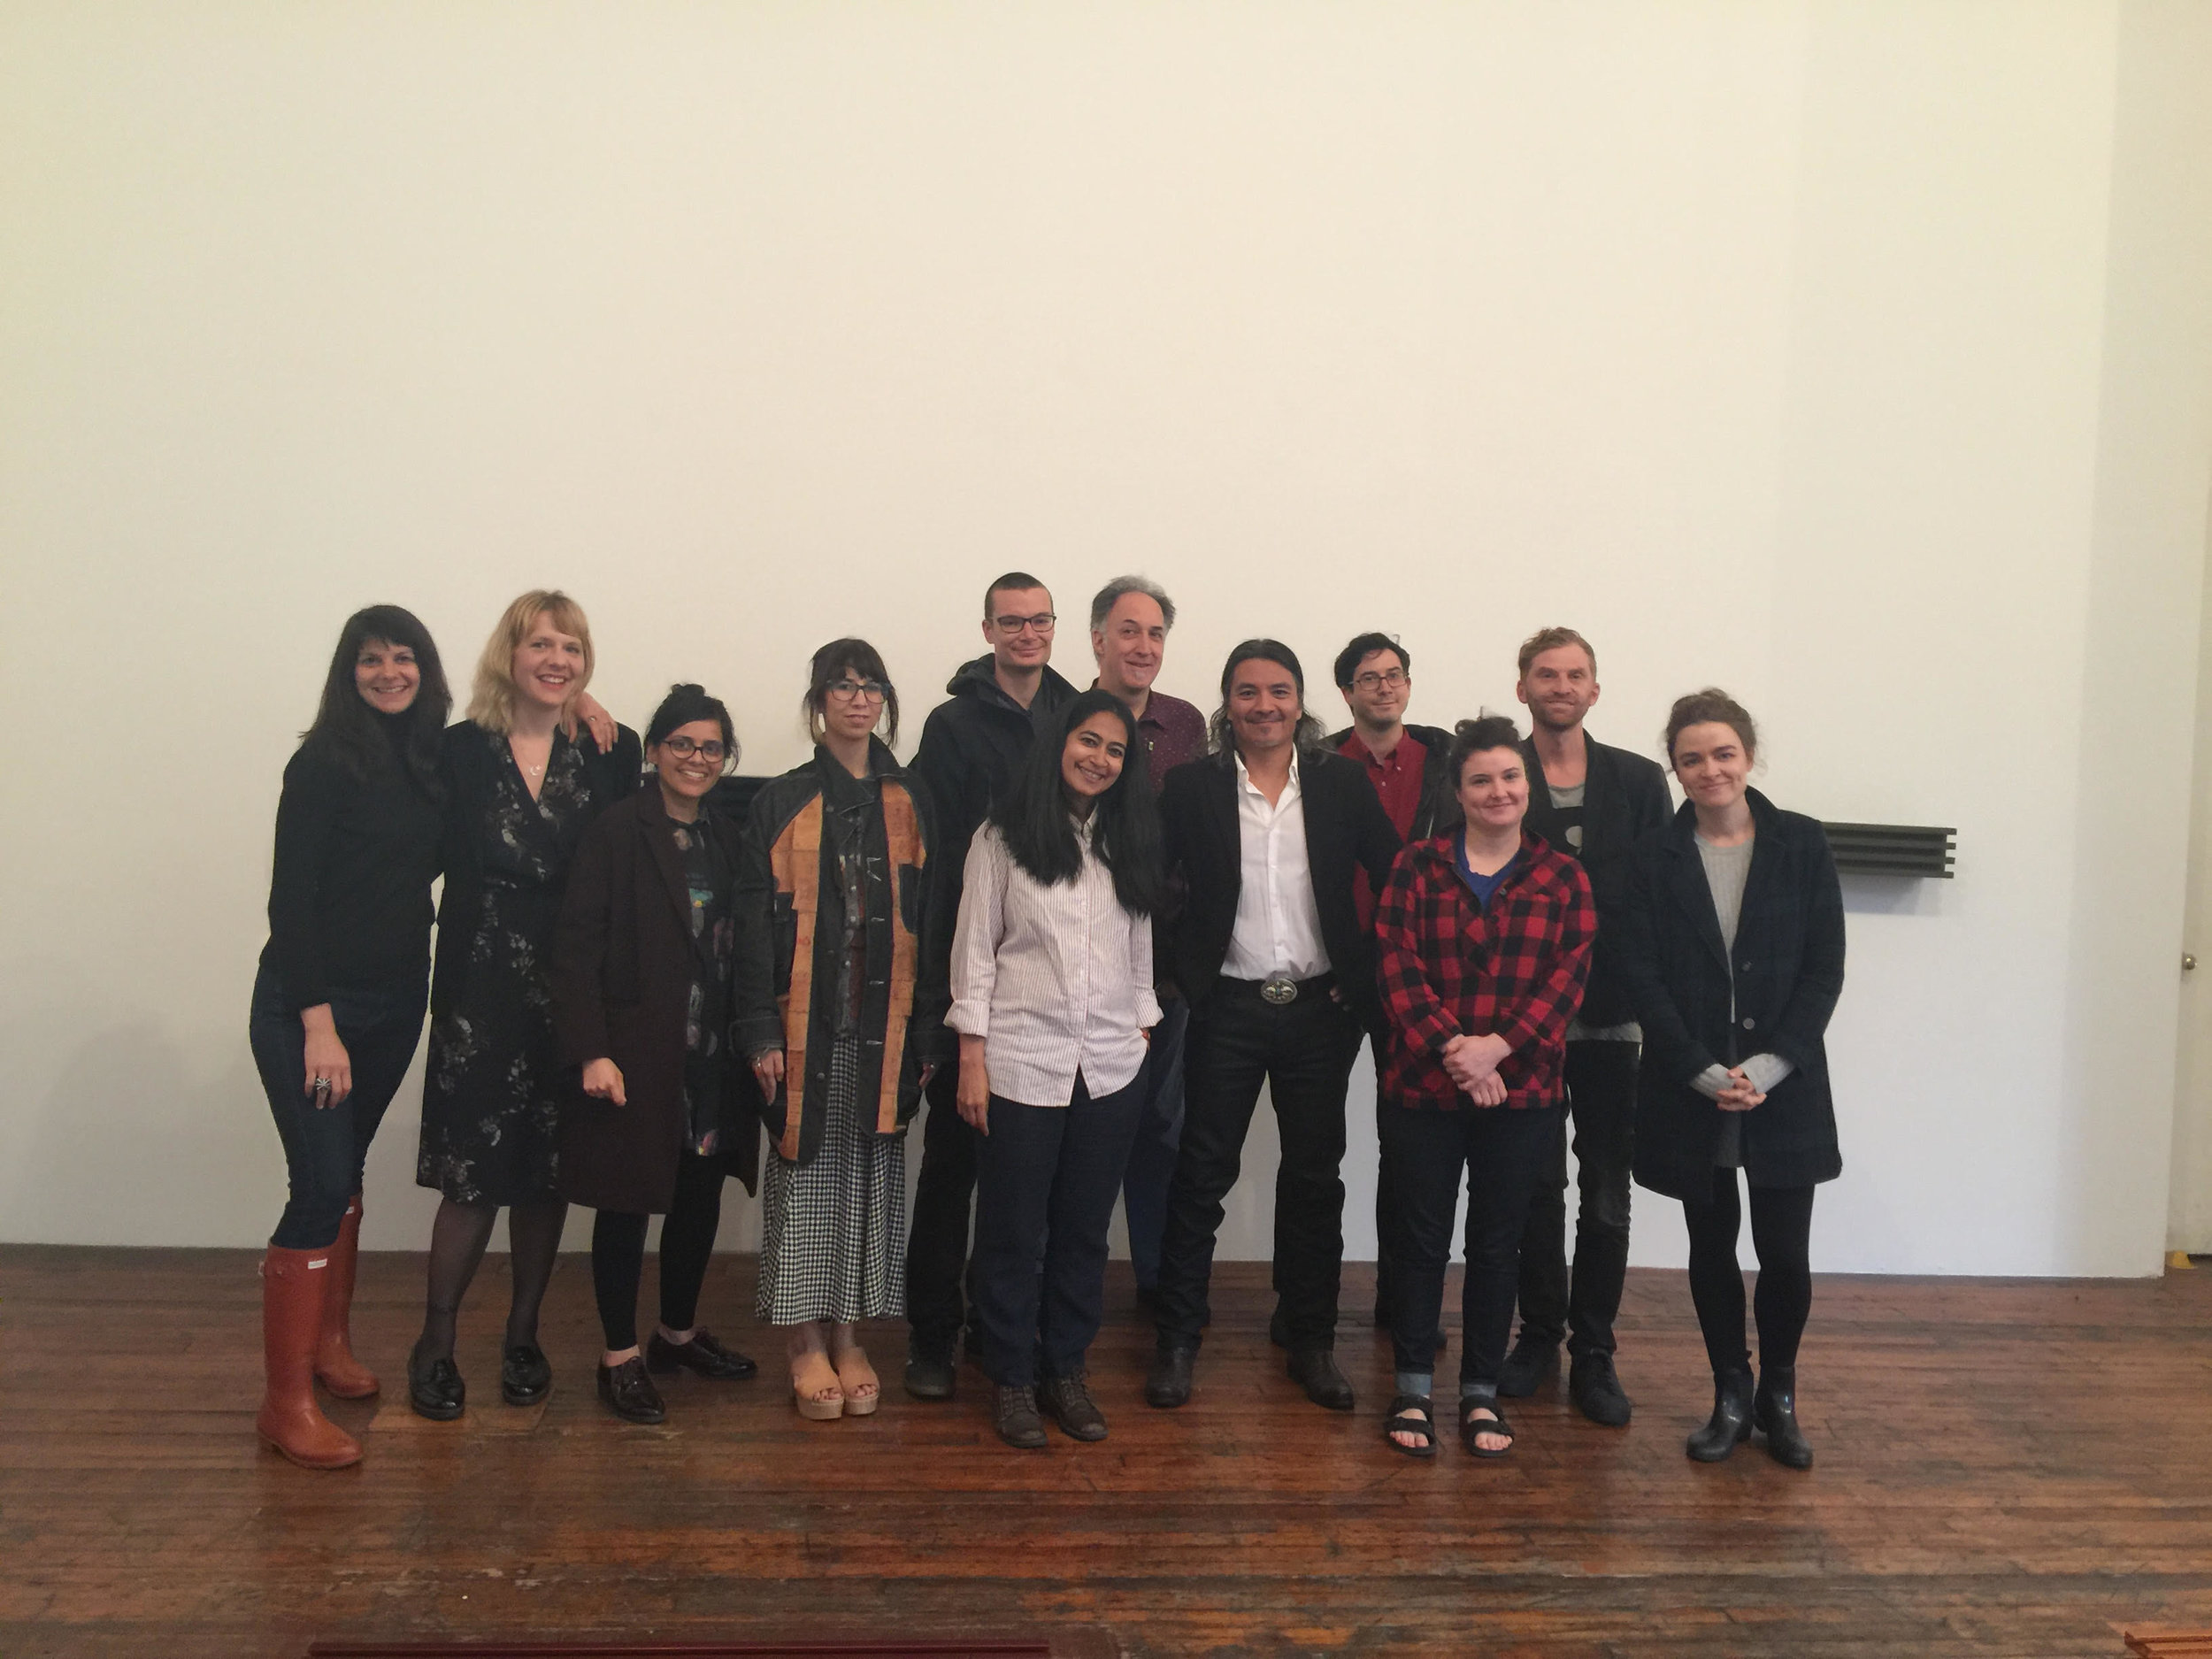 The spring 2018 fellows and alumni took a tour of the Judd Foundation at 101 Spring Street in NYC. We had a great tour guide, and some of us went out for tea, pie and some red wine. Looking forward to our fall 2018 visit.